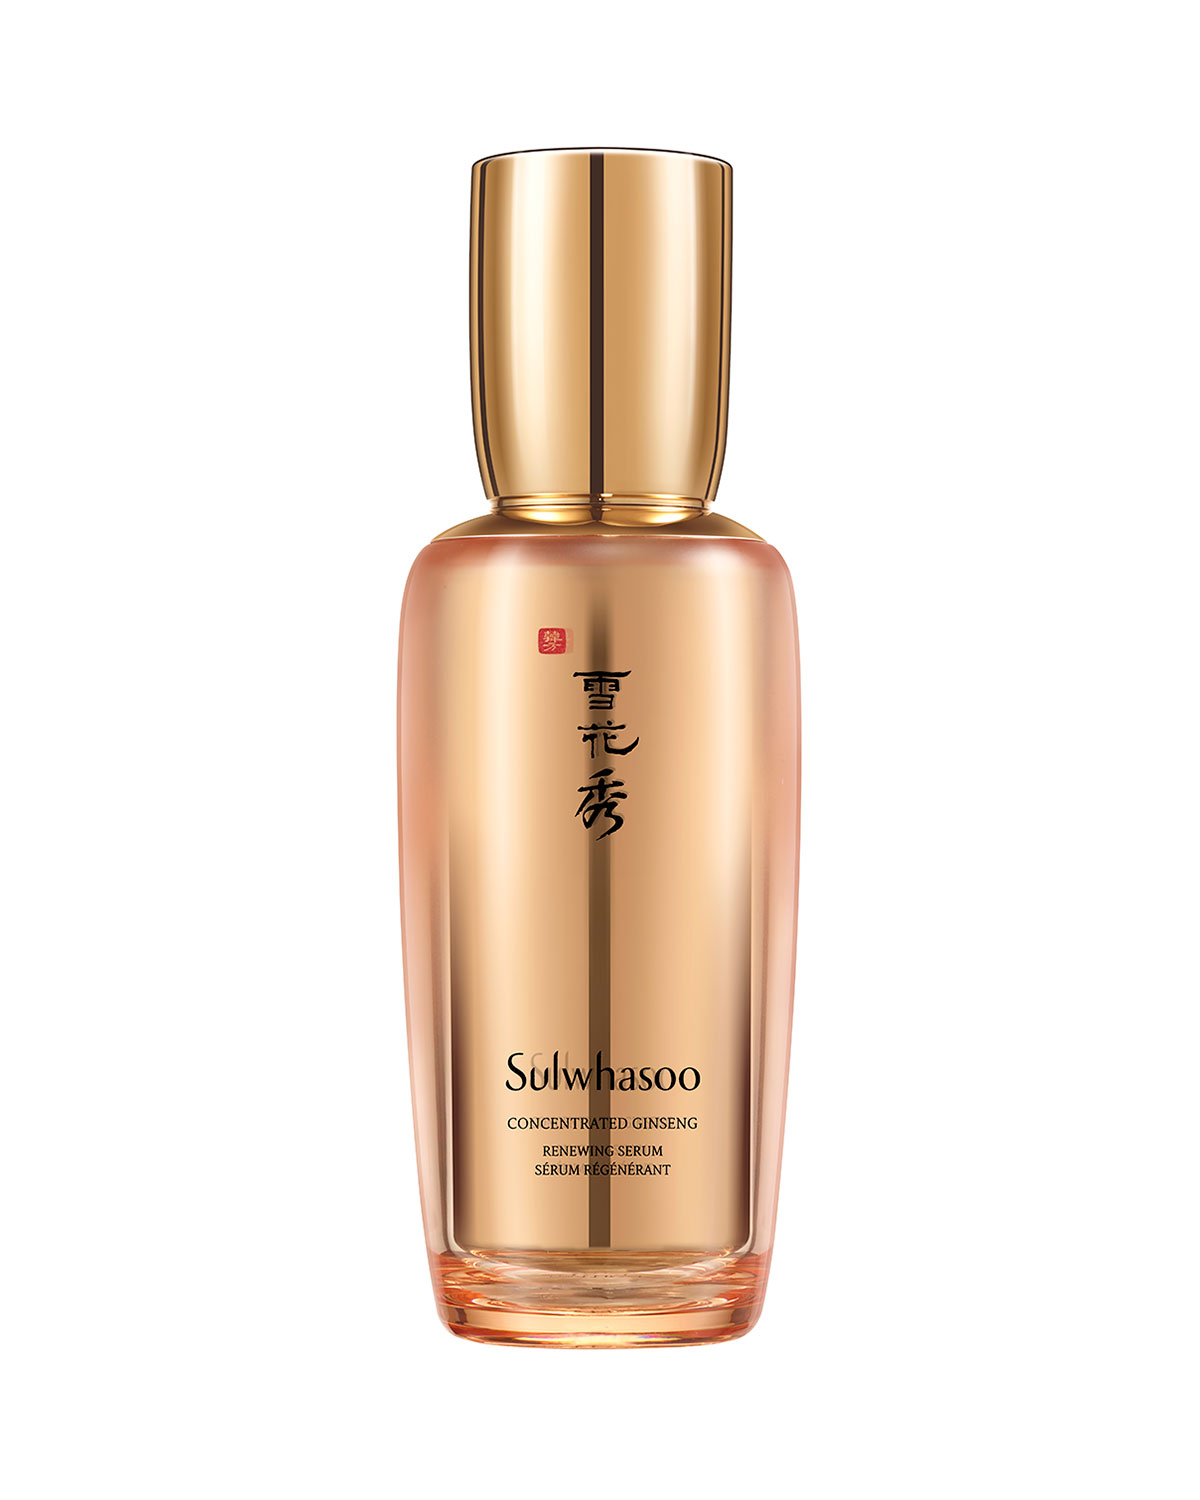 Sulwhasoo CONCENTRATED GINSENG RENEWING SERUM, 1.7 OZ./ 50 ML